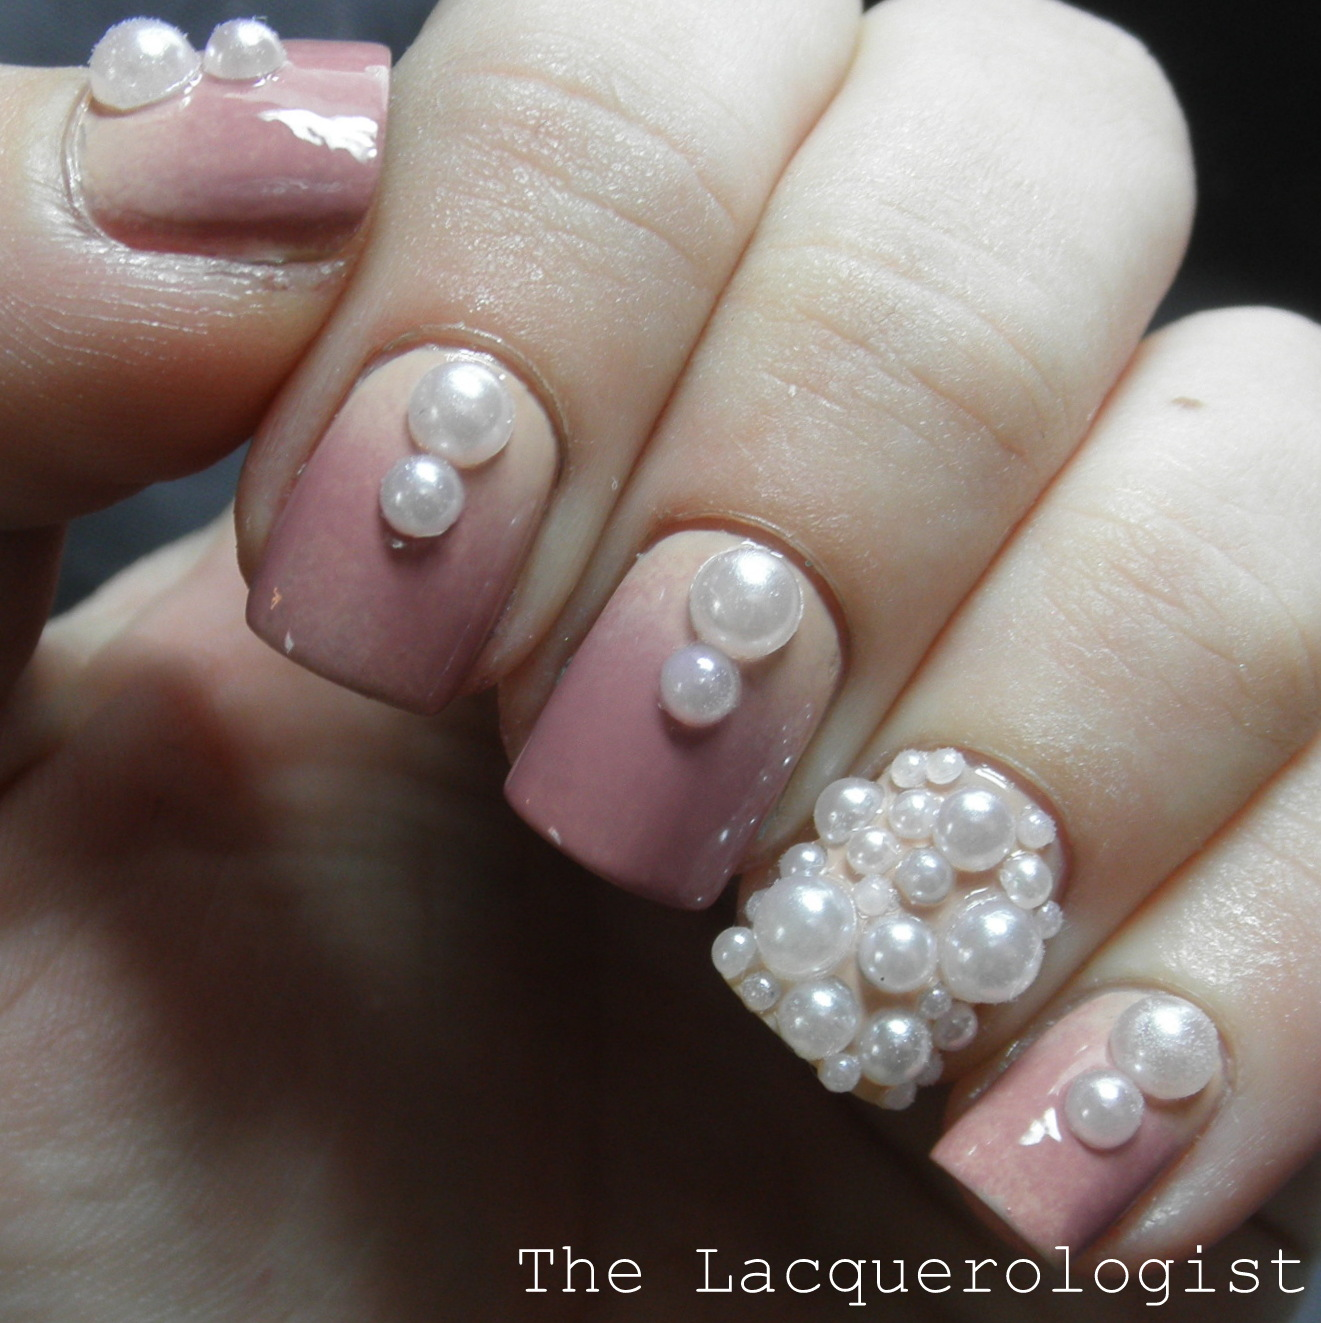 Classy pearl nail art featuring tmart casual contrast the pearls i am using in this post are called tmart pearl nail art rhinestones round white 10 on the site and i am really pleased with how gorgeous this prinsesfo Images